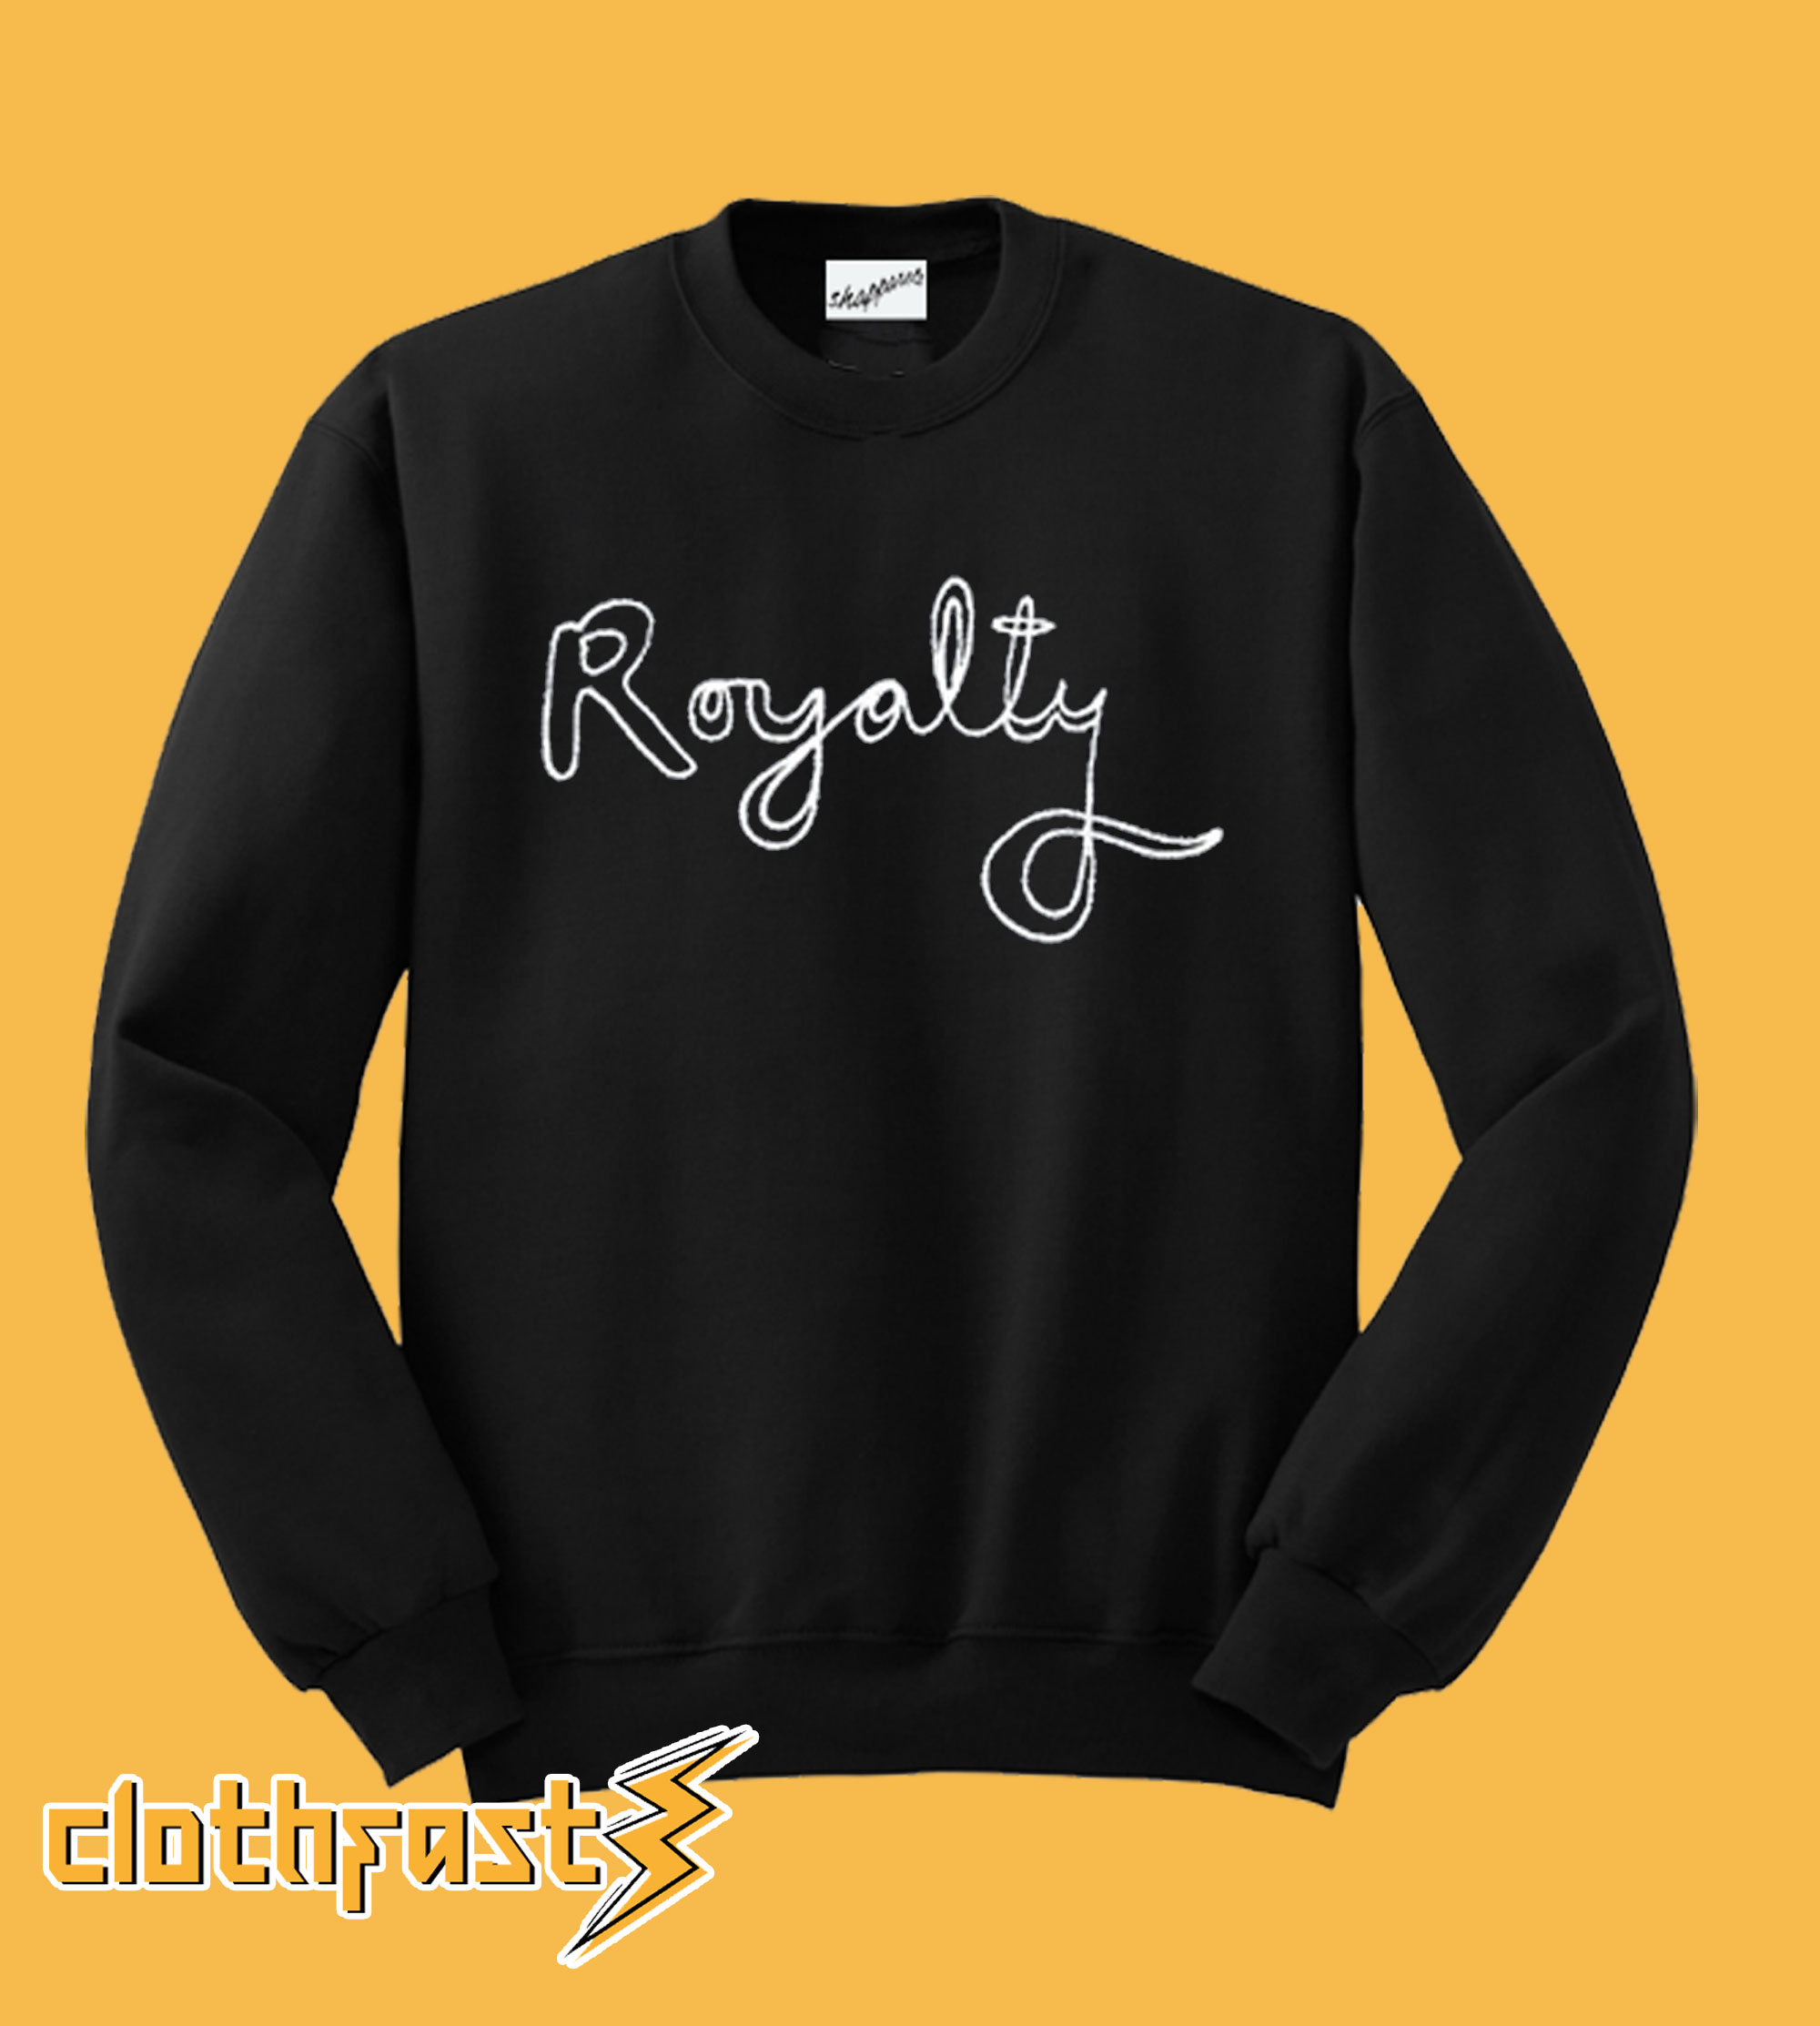 Savannah Guthrie Royalty Sweatshirt